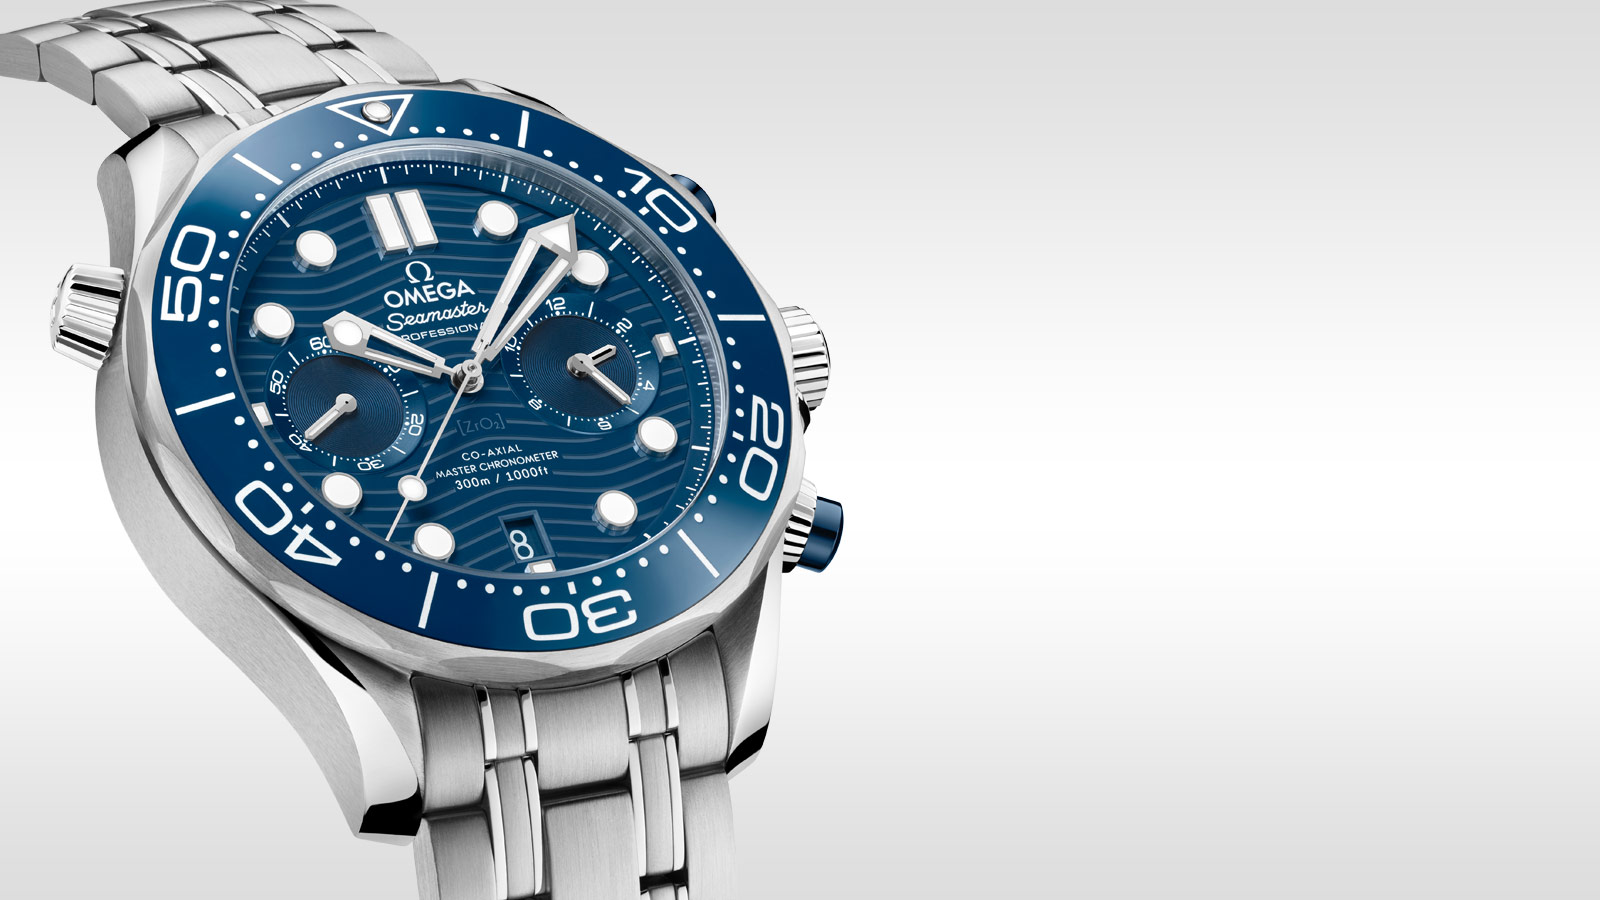 Seamaster ダイバー 300M Diver 300M Omega Co‑Axial Master Chronometer Chronograph 44 mm - 210.30.44.51.03.001 - ビュー 1